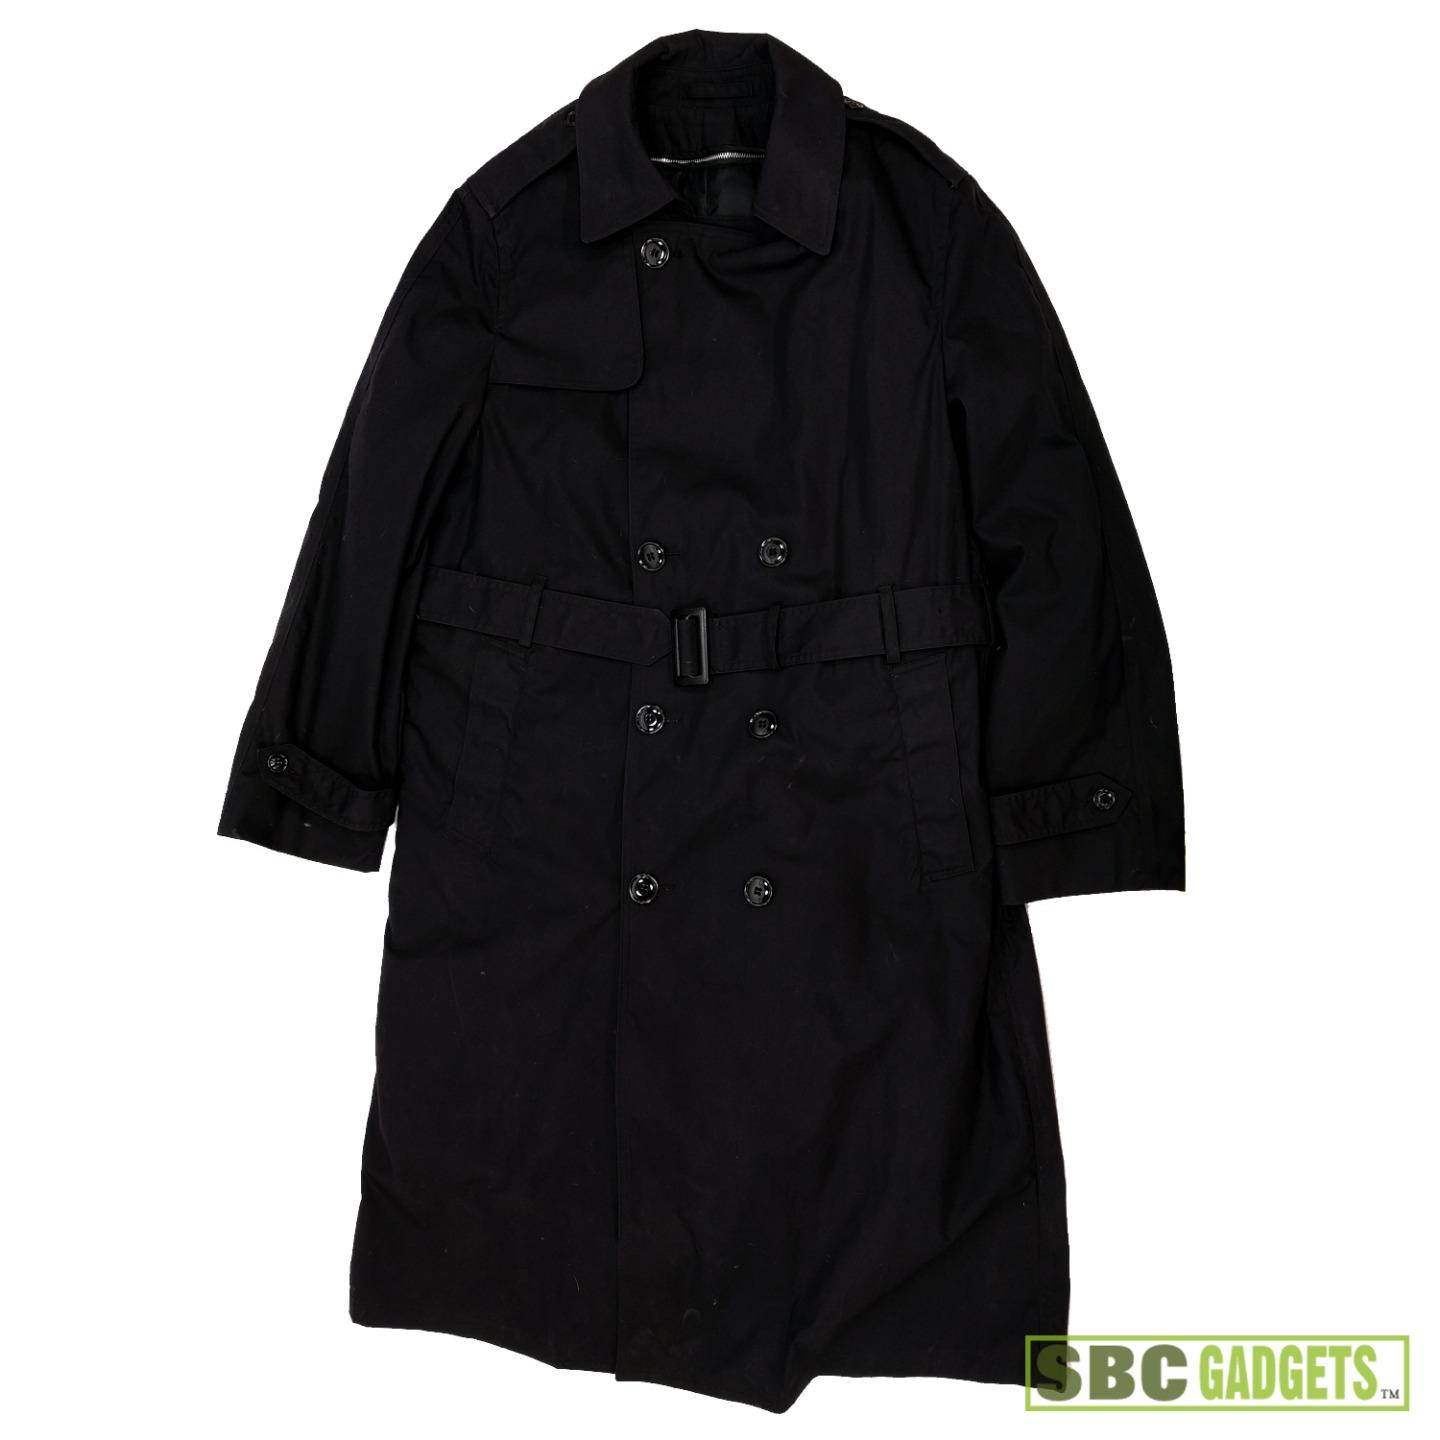 Shop iconic trench coats and car coats for women. Our heritage styles feature in three fits – slim, classic and relaxed. Black Grey Beige Blue Green Pink Red Yellow White. Show Results Clear. Size ALL XXS XS S M L XL XXL. Burberry uses your personal information to offer an enhanced customer service tailored to your preferences. You.